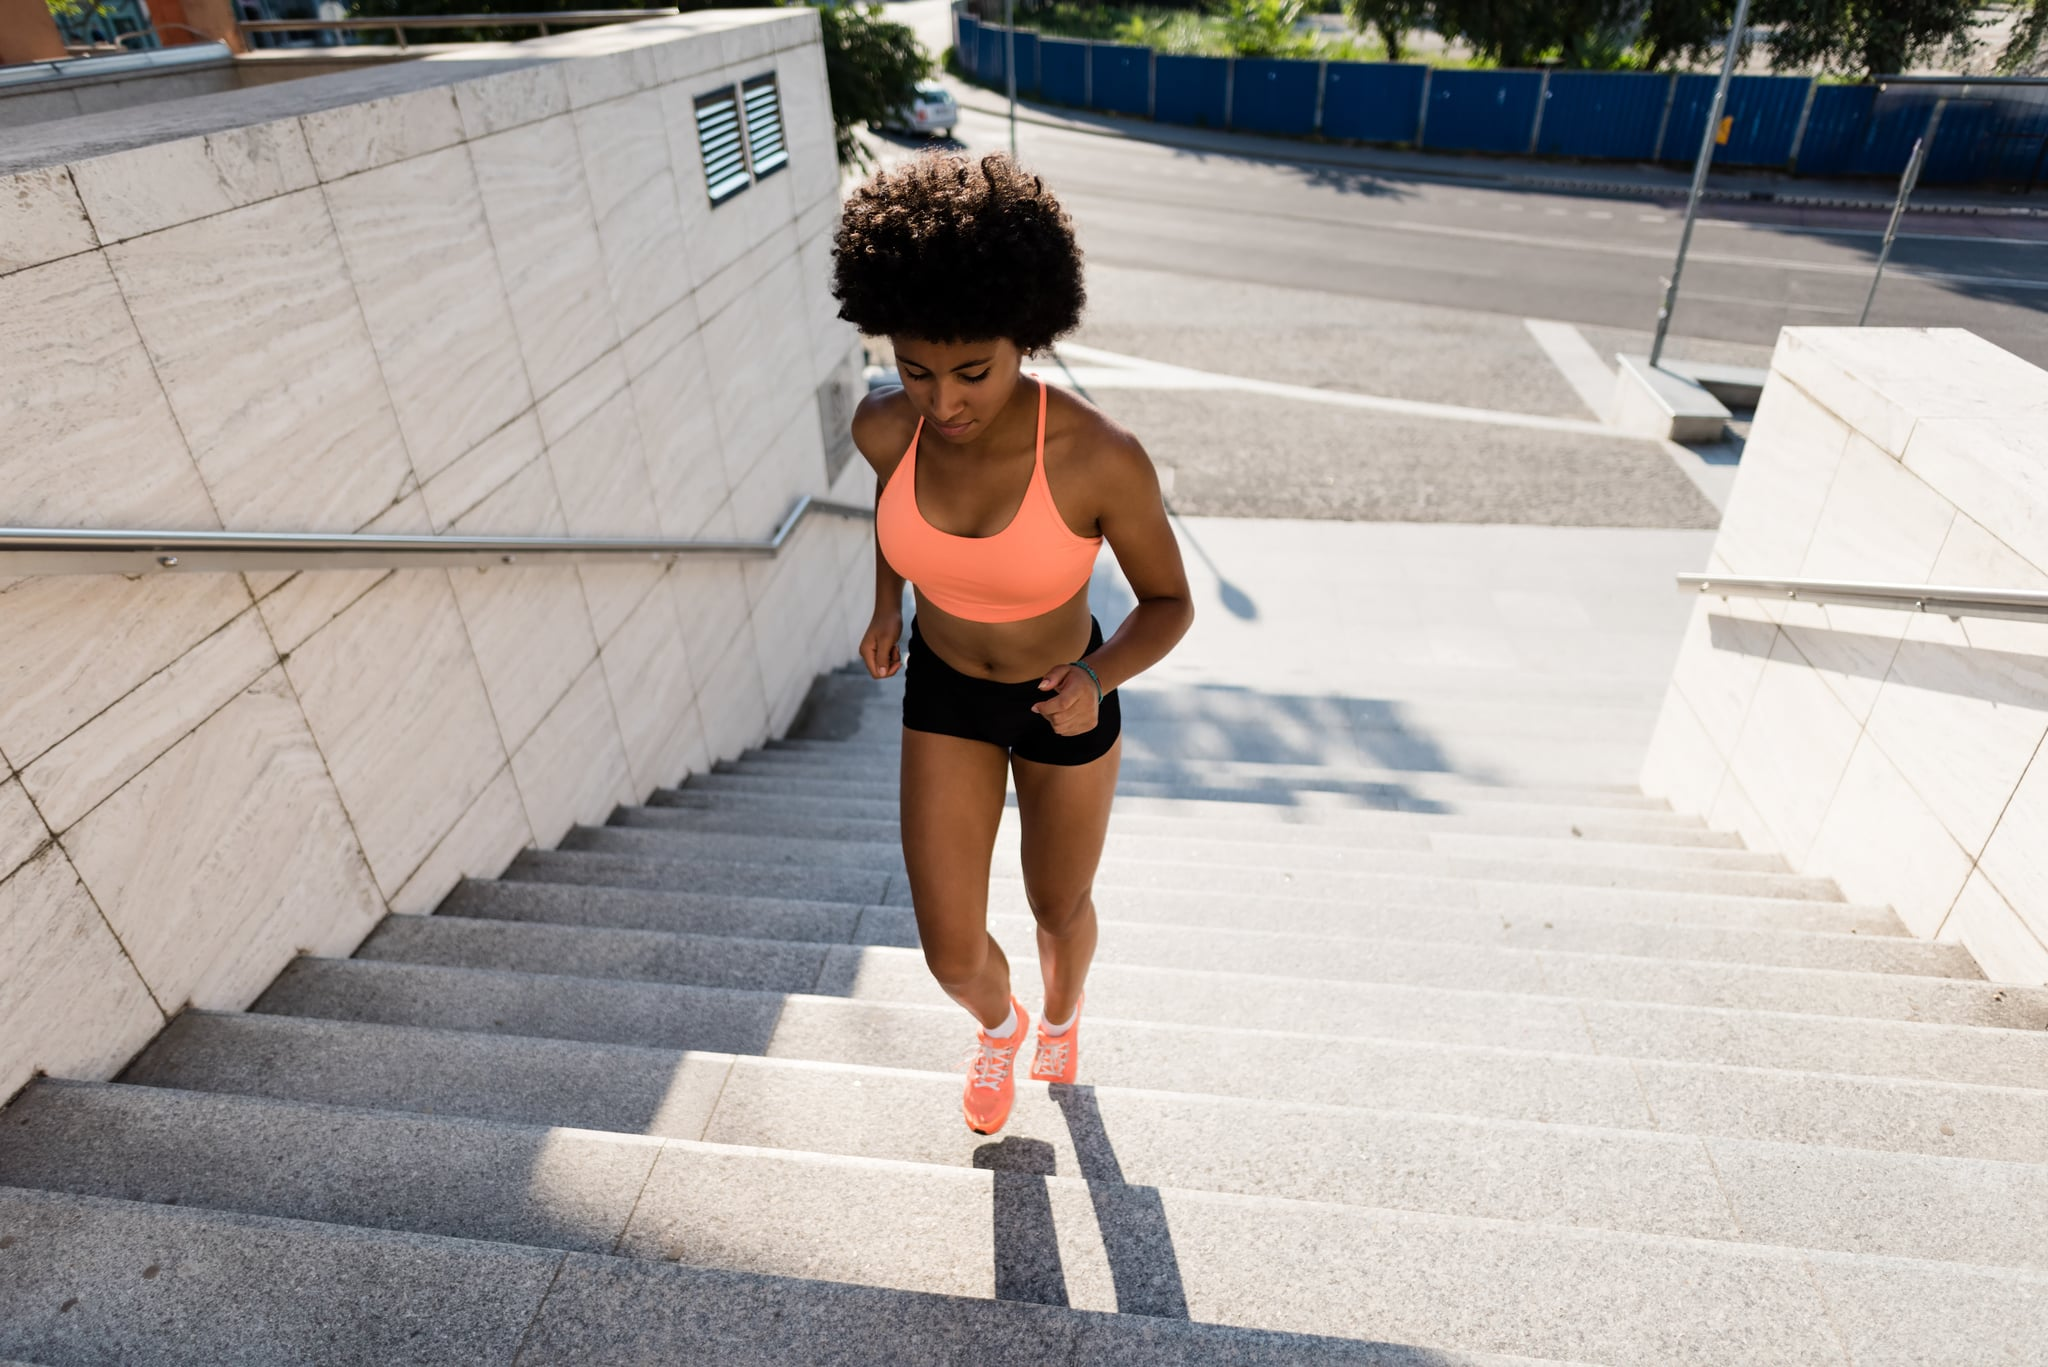 Healthy lifestyle sports woman running on stairway